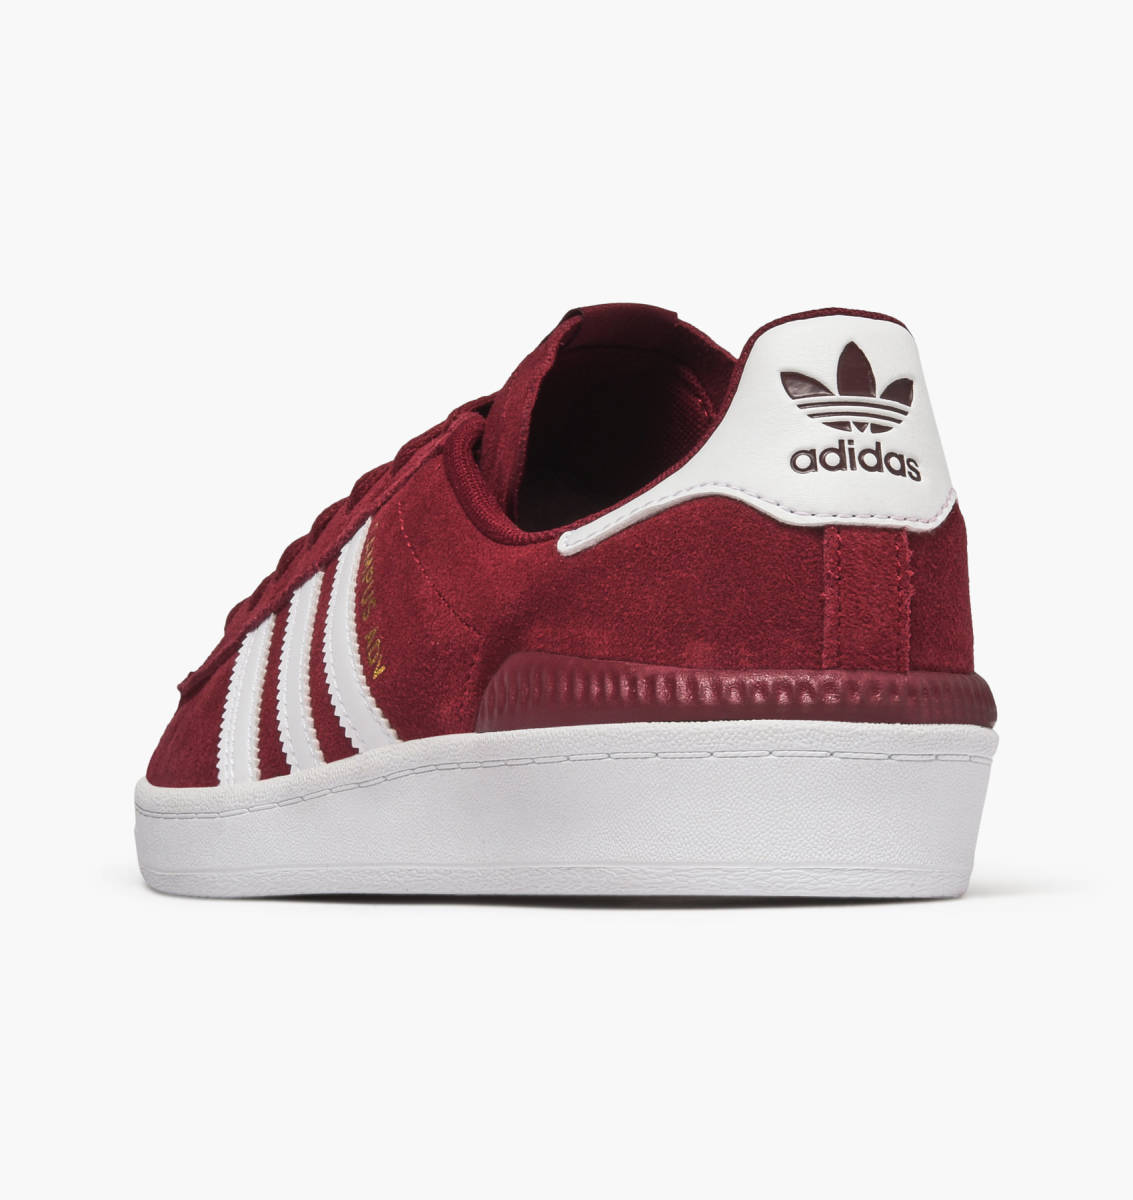 d711ee14426 coupon for adidas campus adv collegiate burgundy footwear white abc38  480b0  real adidas originals campus adv advantage b22714 57e48 433a6